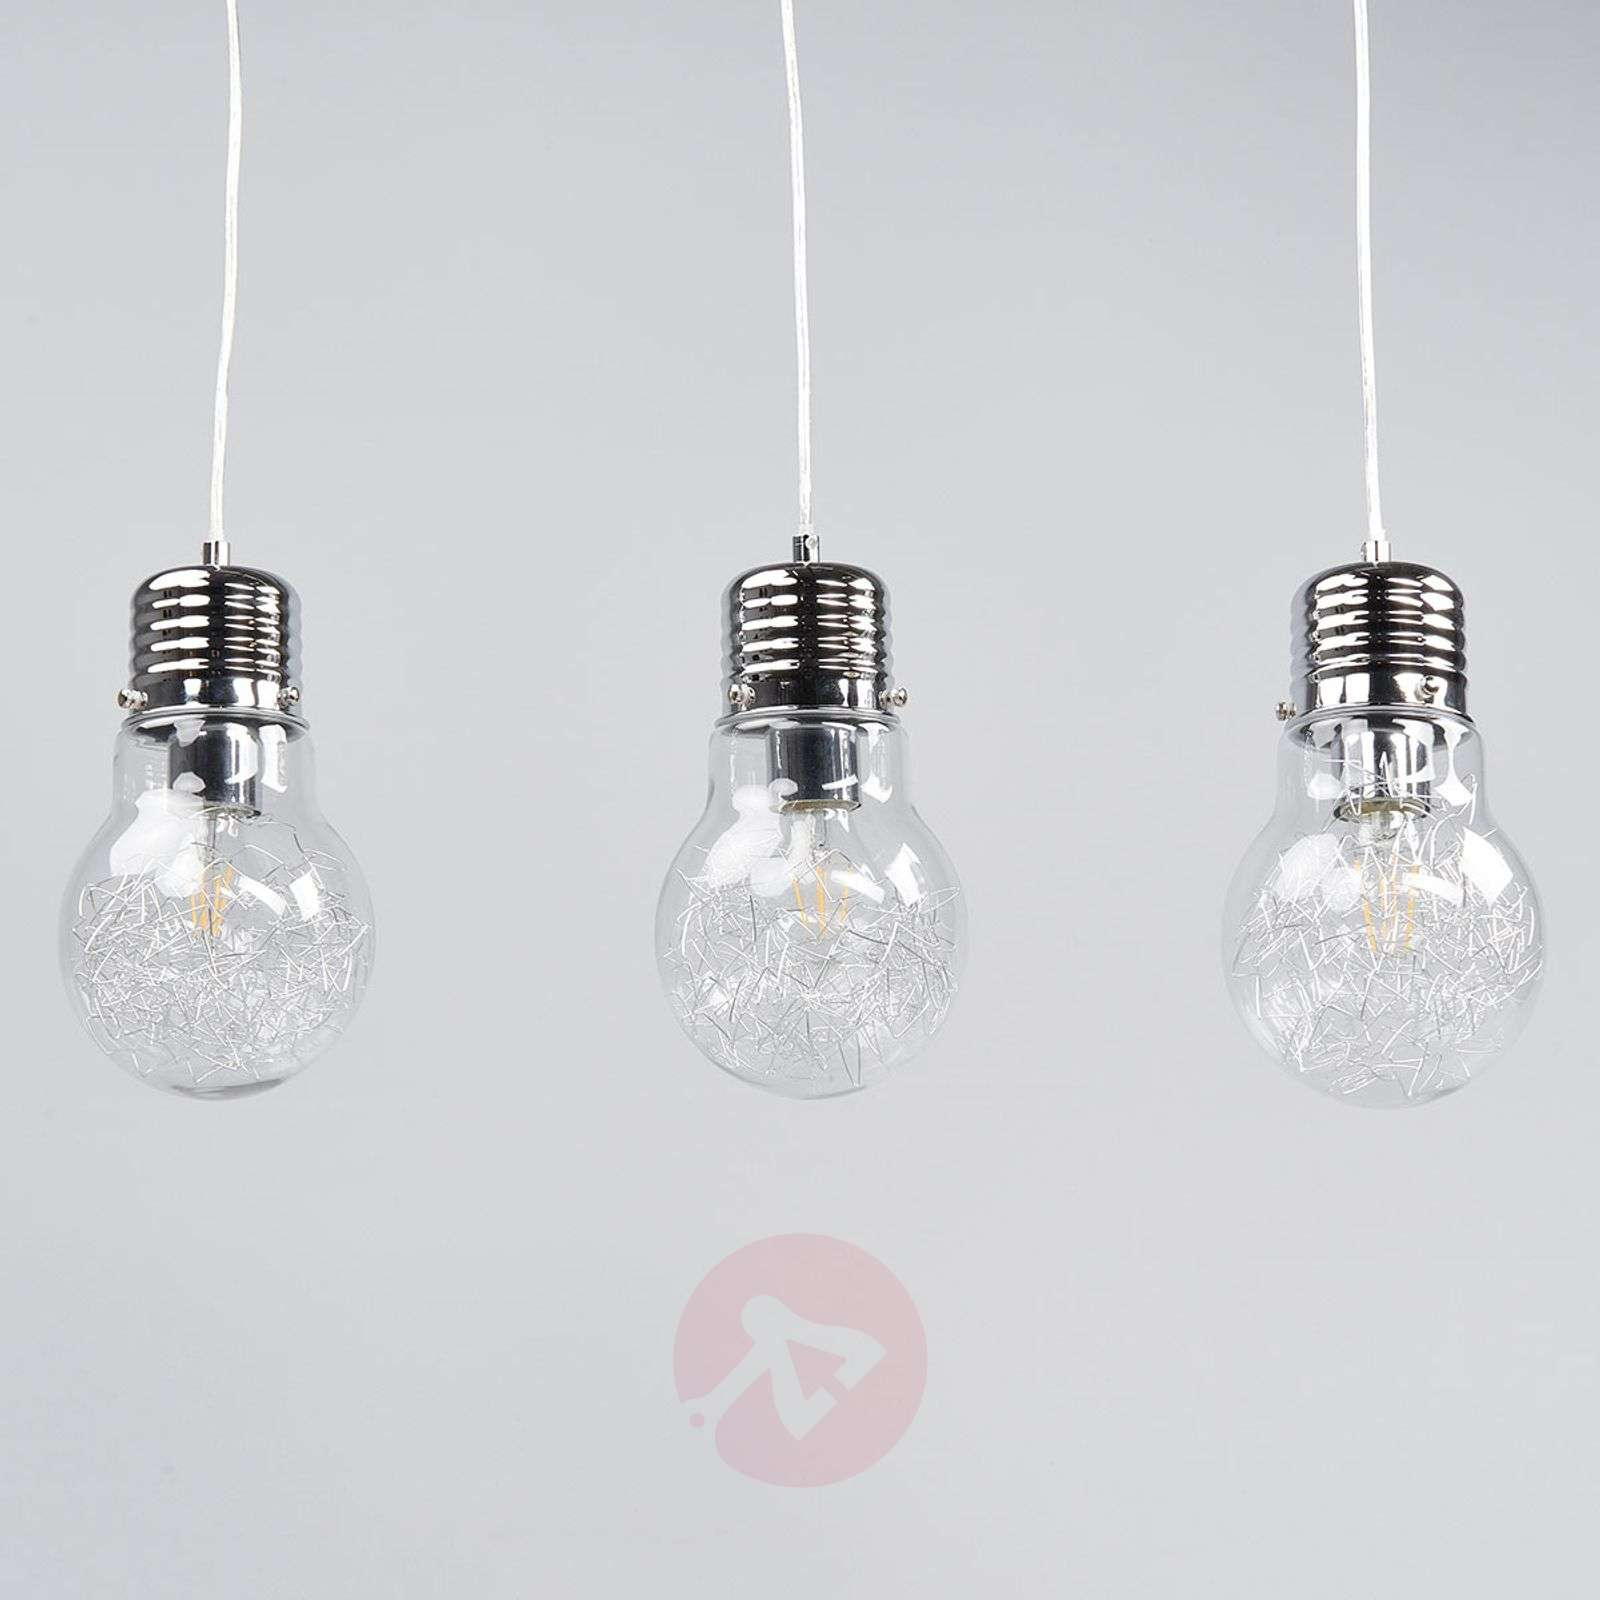 pendant filecentennial ca in bulb light com livermore pixball l